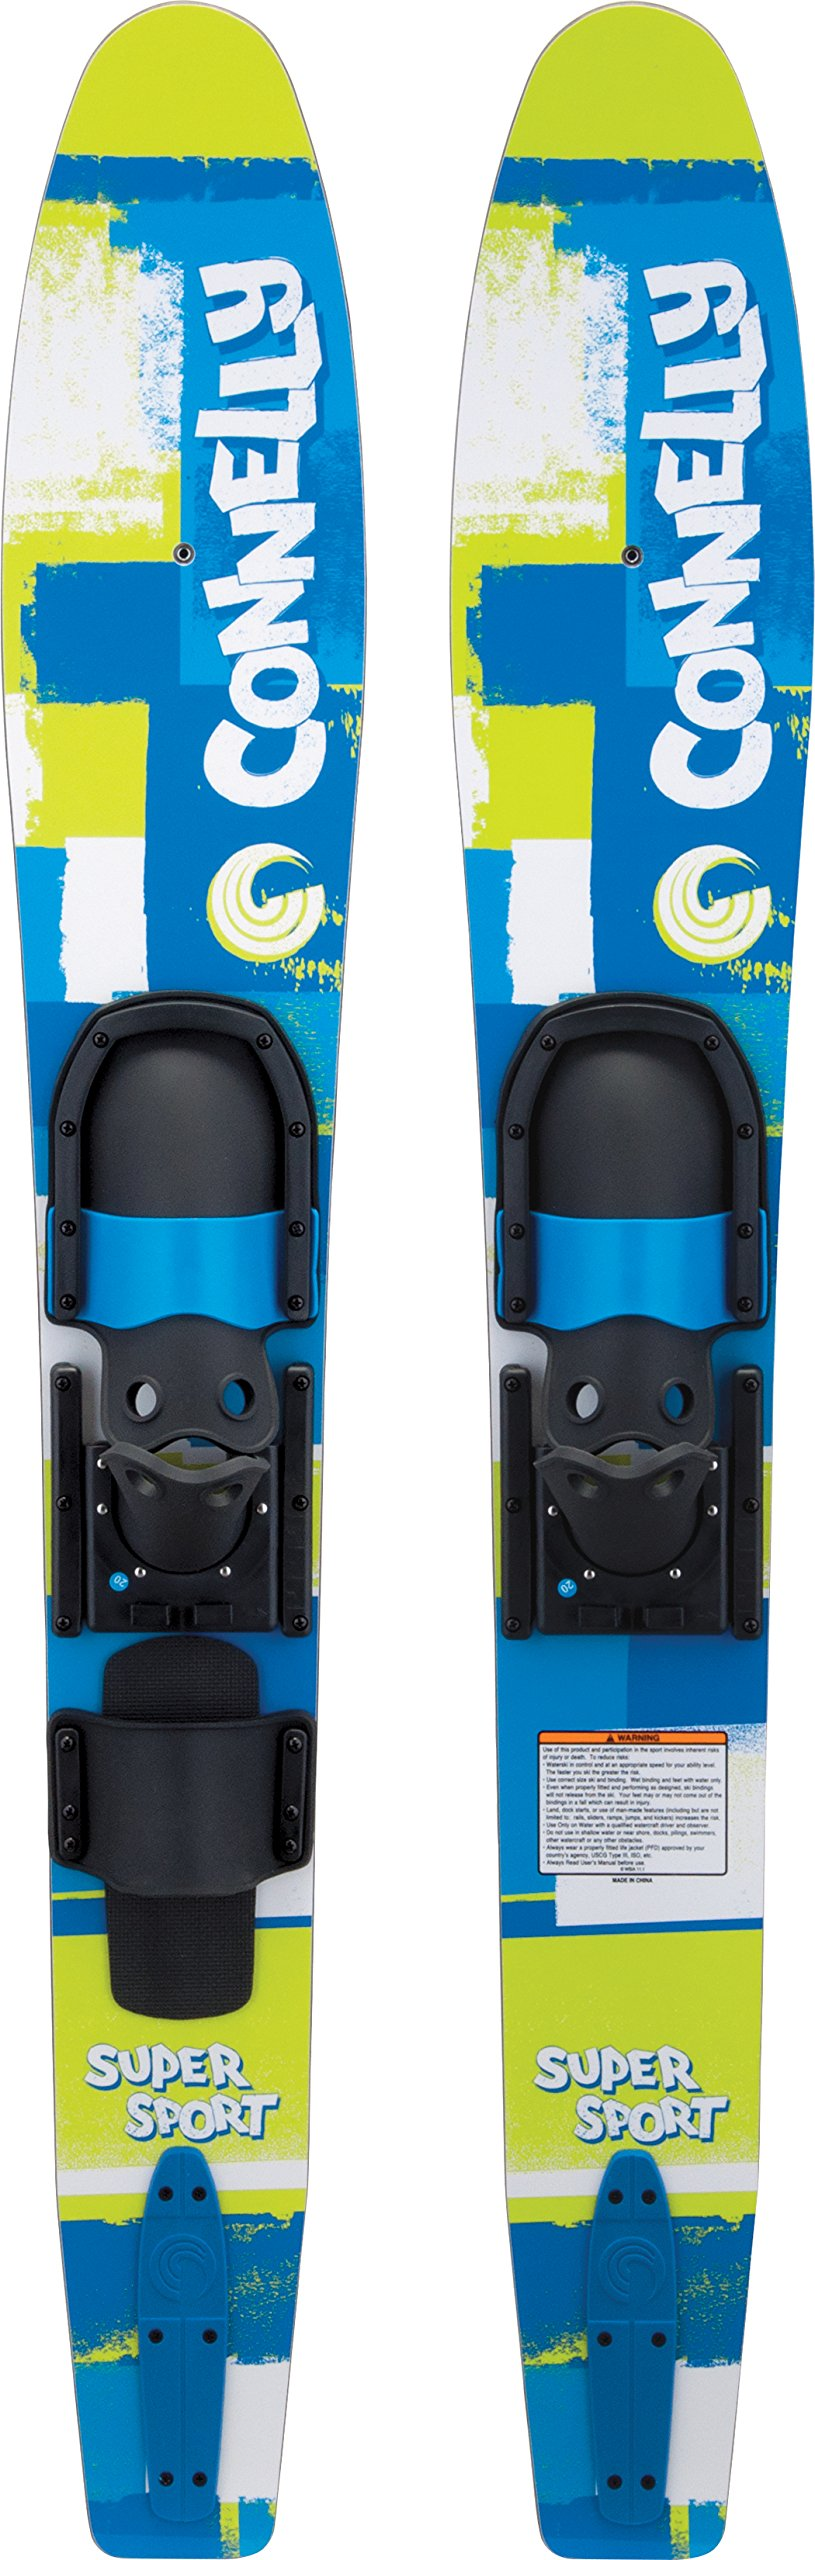 CWB Connelly Skis Super Sport Waterski Pair with Slide Adjustable Bindings